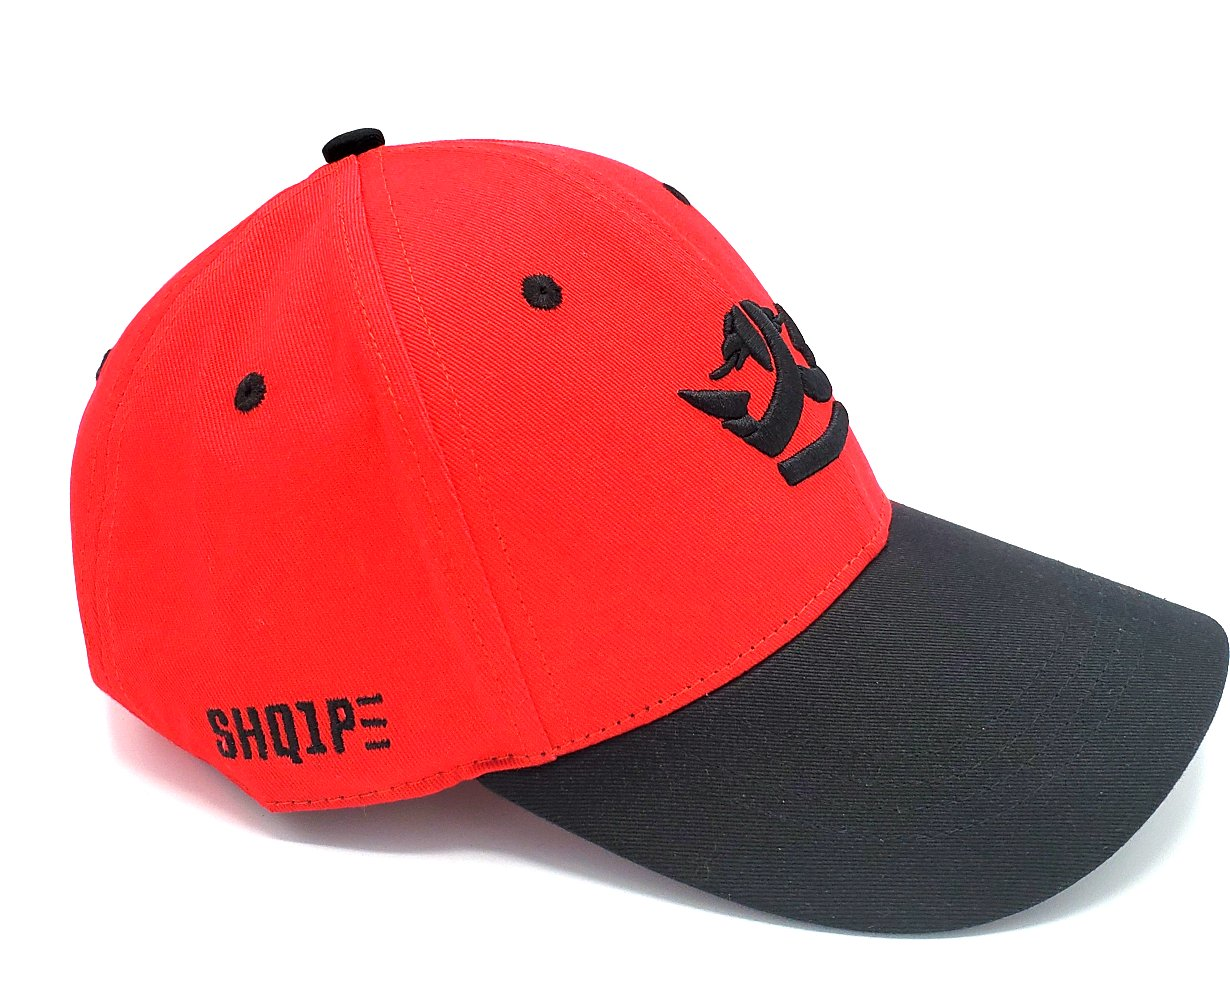 1st Edition Shq1pe Baseball Cap Red/Black Brim